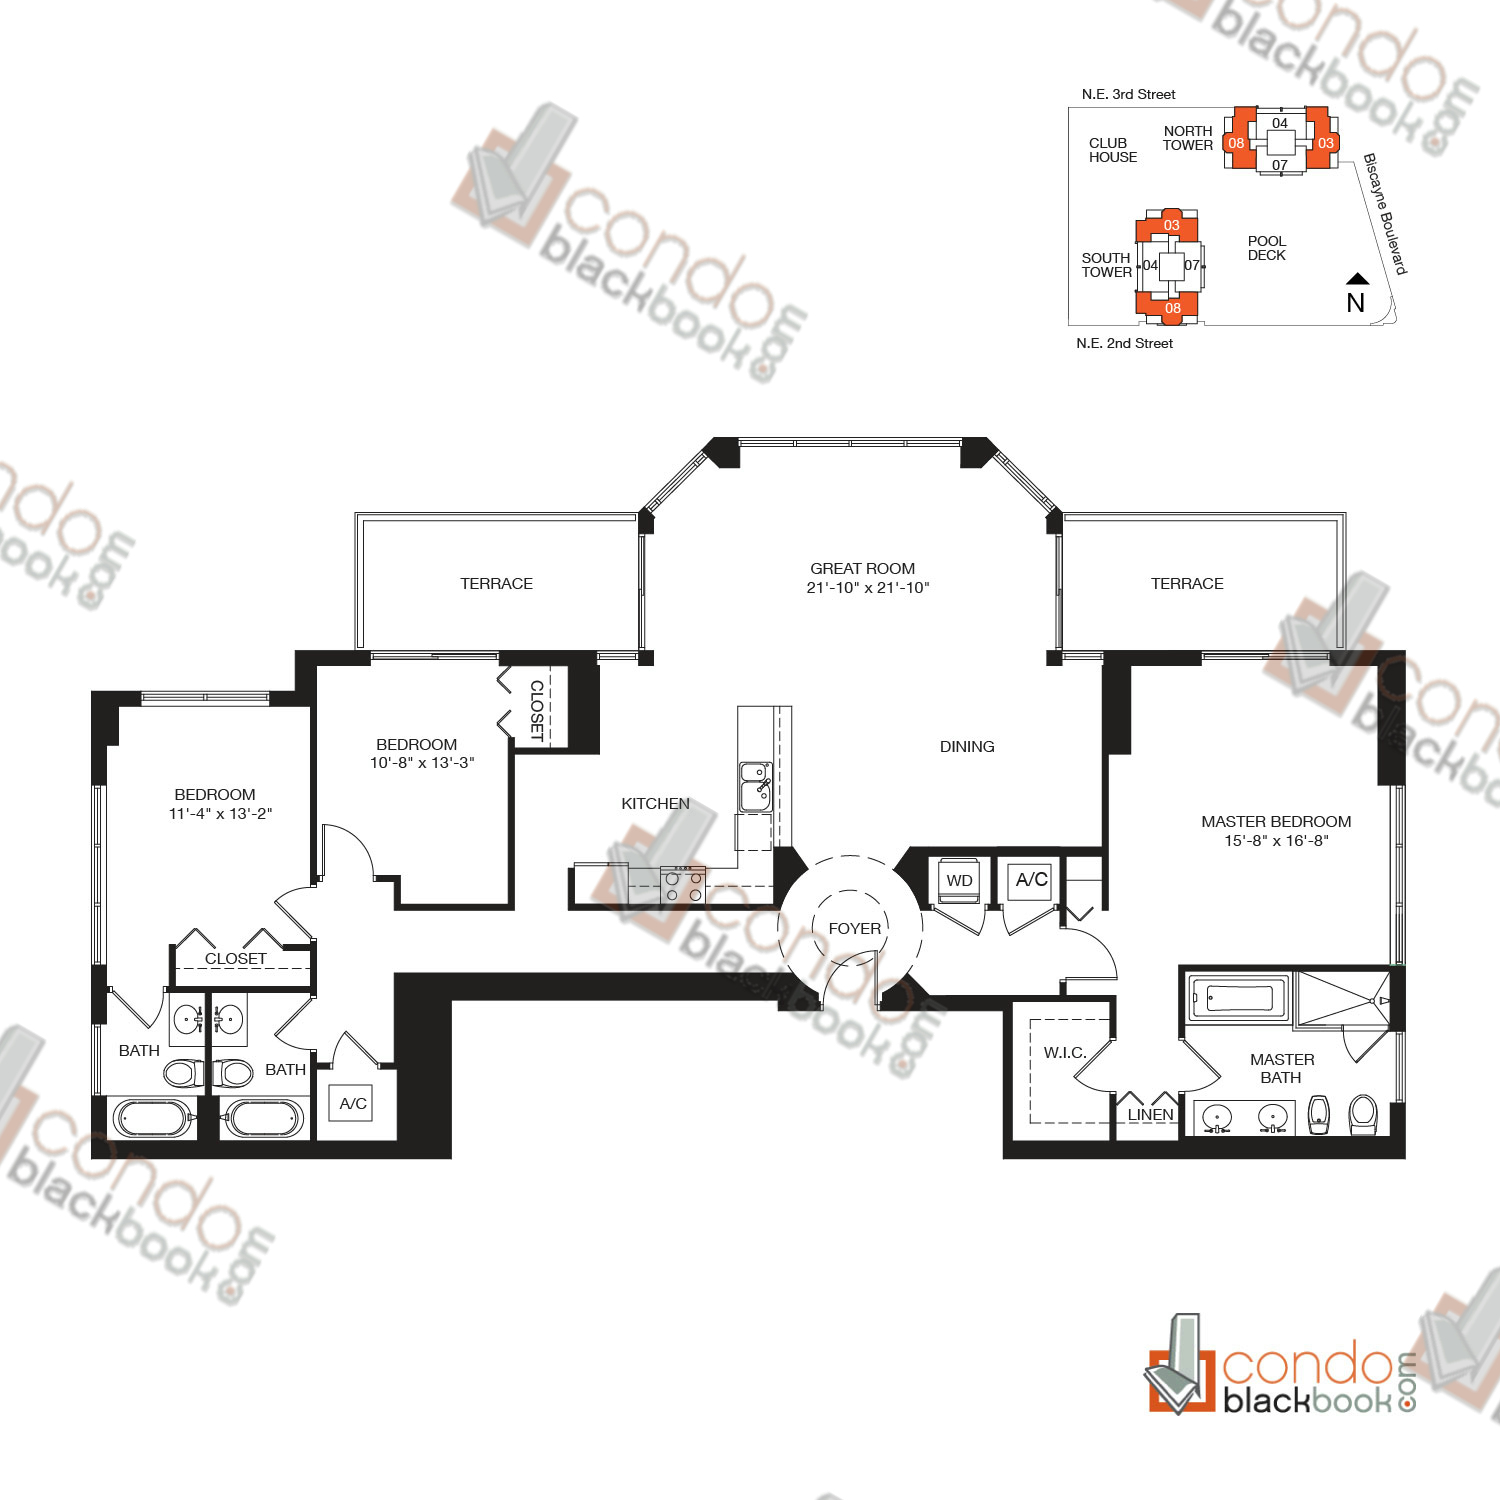 Floor plan for Vizcayne Downtown Miami Miami, model RESIDENCE 8, line 03, 08, 3/3 bedrooms, 1,970 sq ft